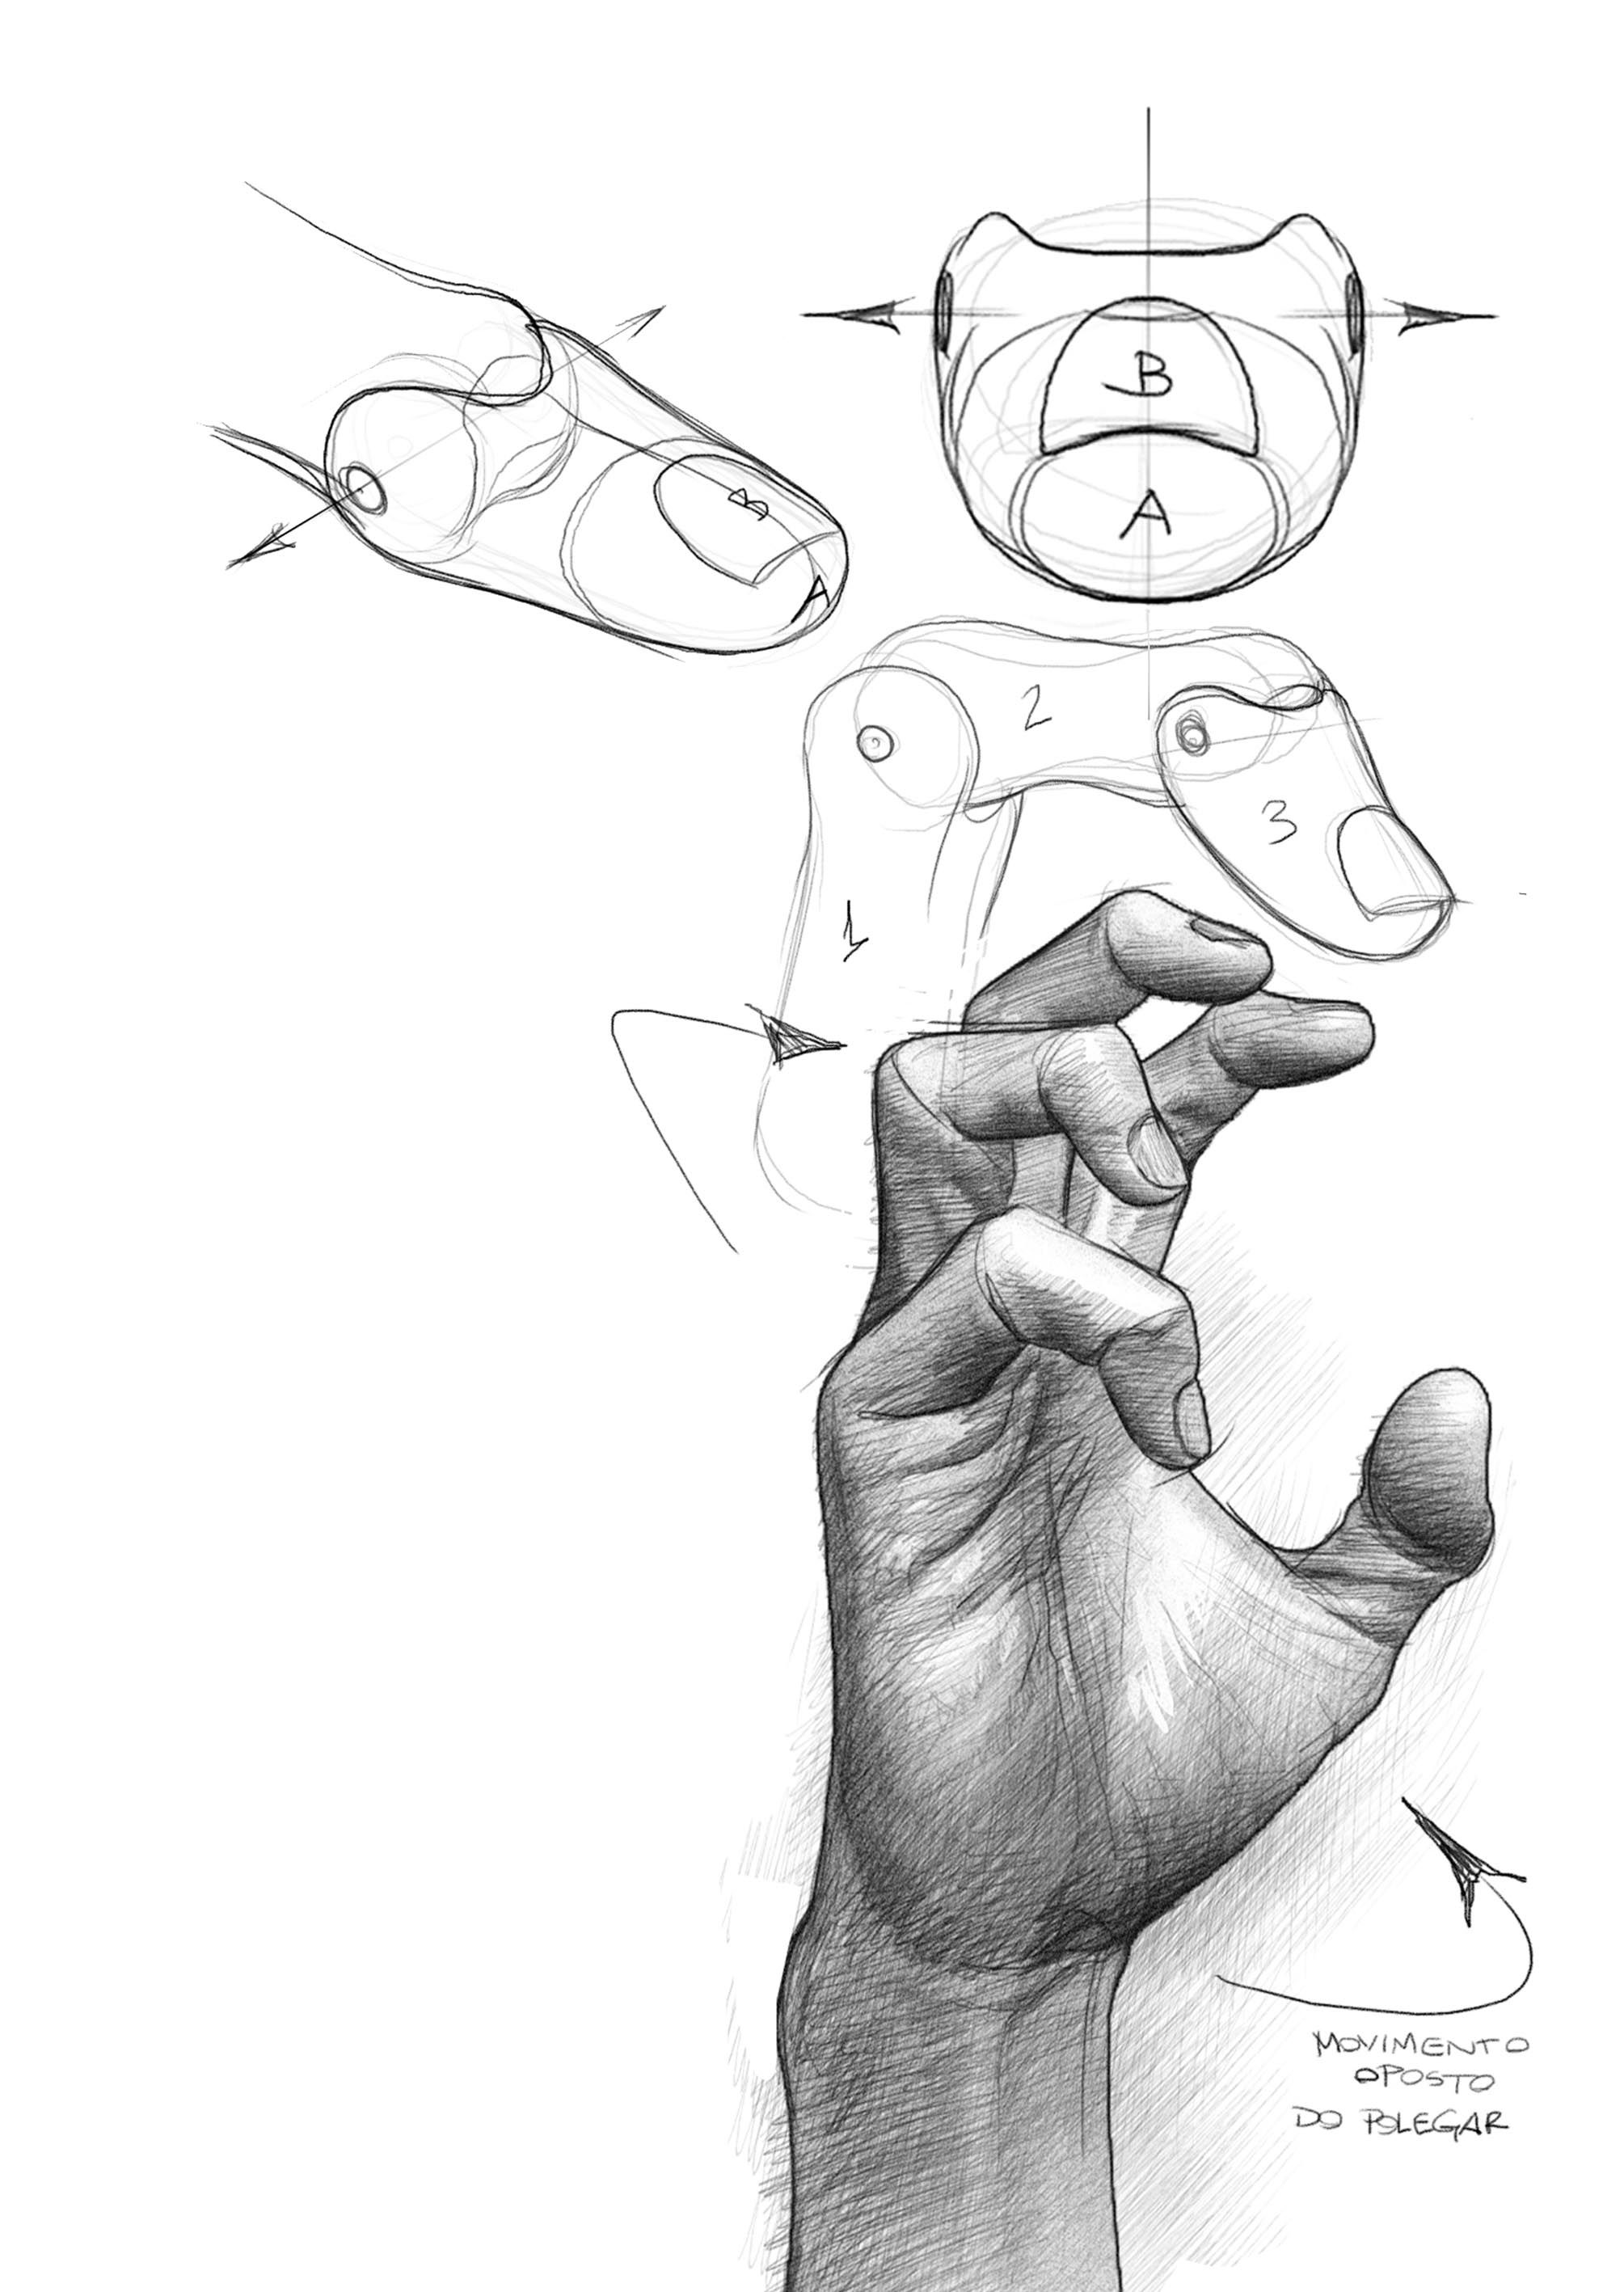 Pin by Henry Bridges on Hands and Feet | Pinterest | Anatomy, Draw ...